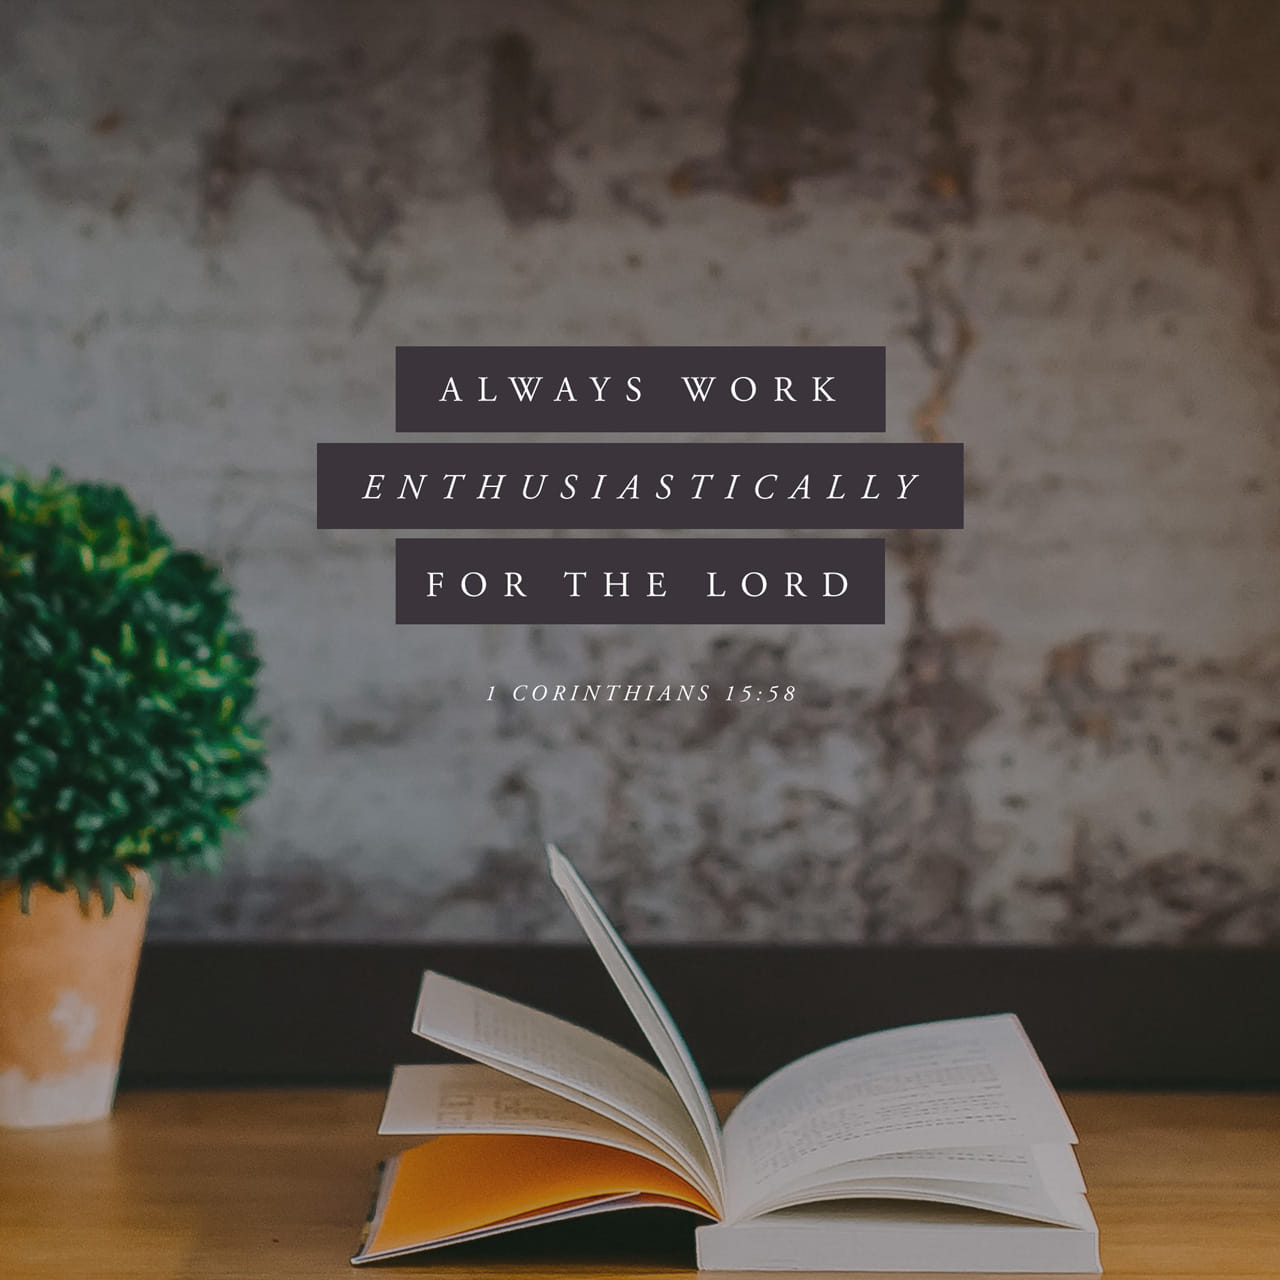 1 Corinthians 15:58 Therefore, my beloved brethren, be ye stedfast, unmoveable, always abounding in the work of the Lord, forasmuch as ye know that your labour is not in vain in the Lord. | King James Version (KJV)